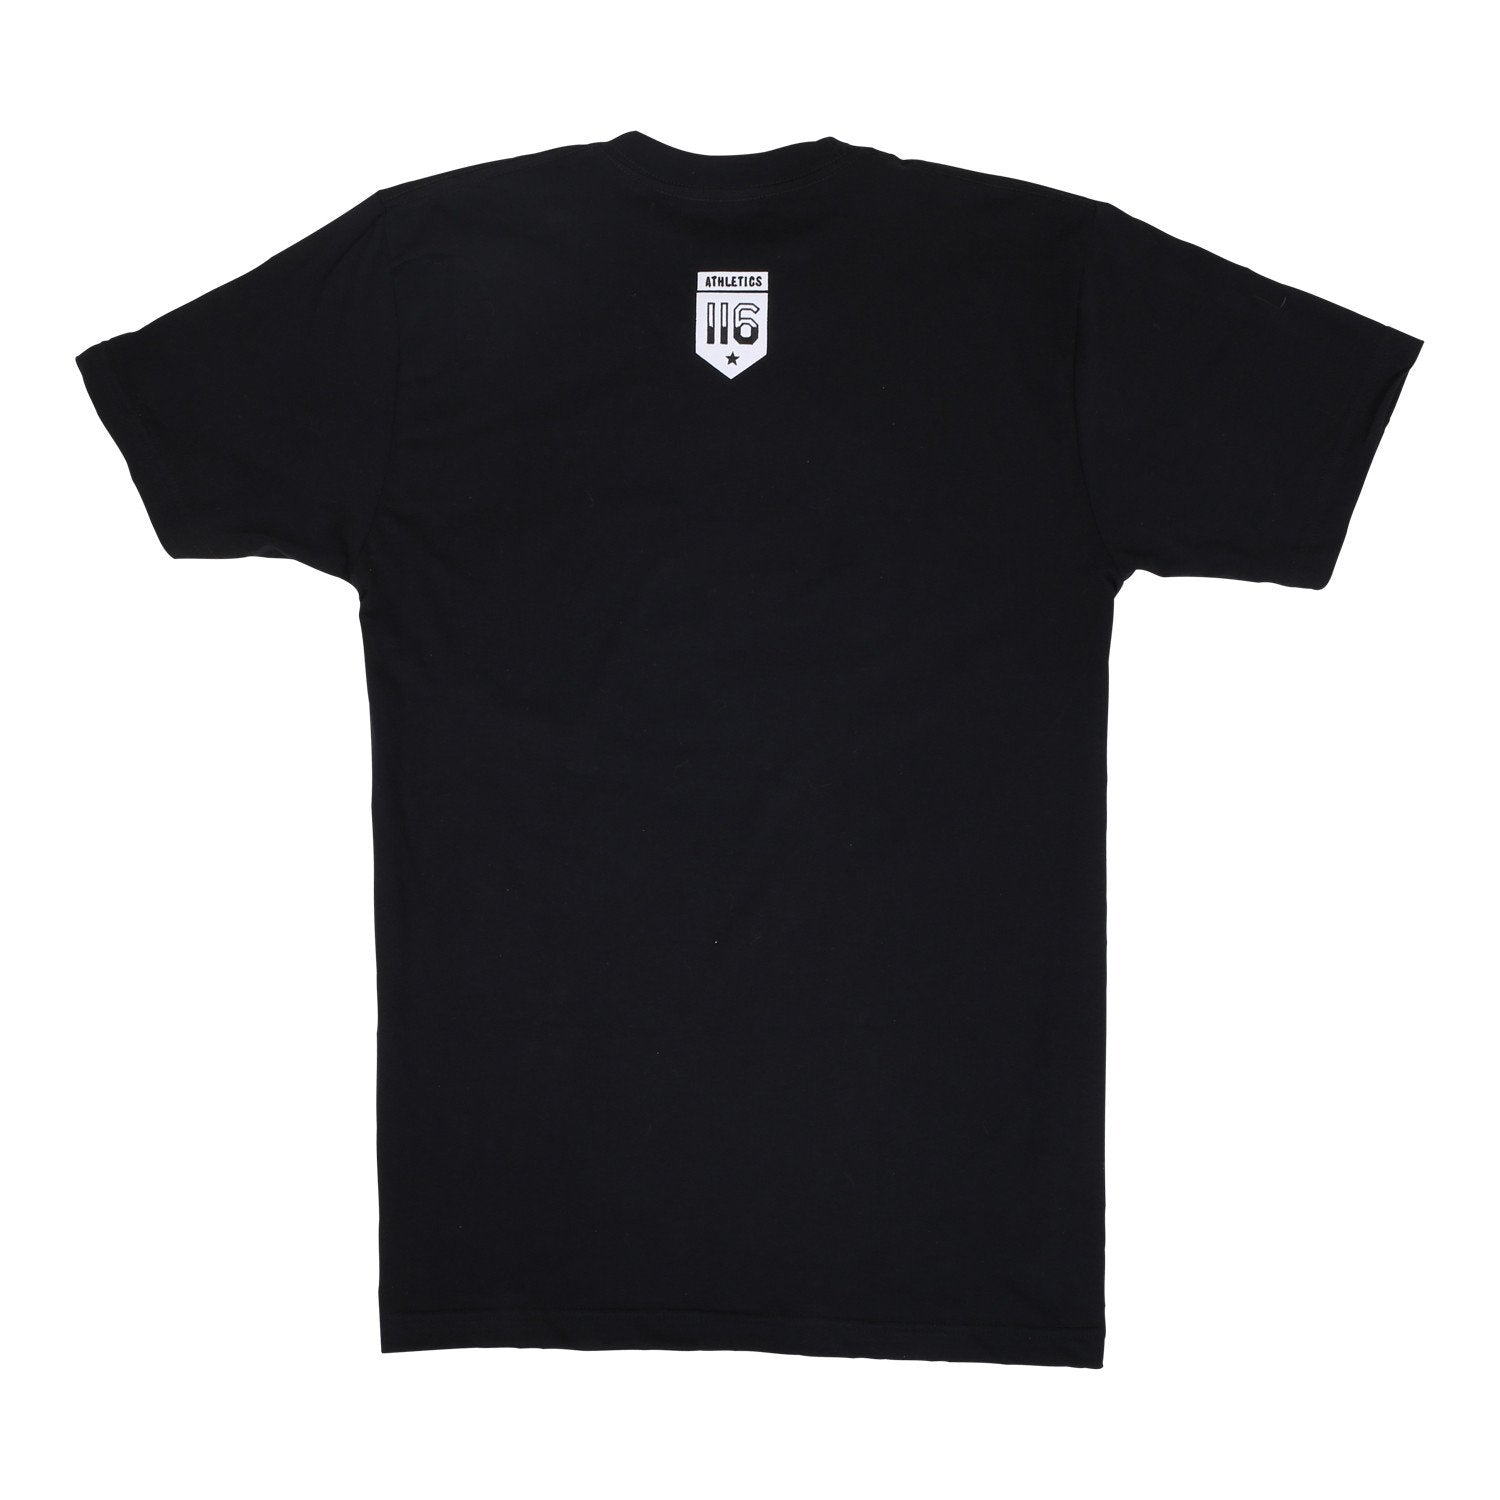 116 Athletics x Will Bryant Fellowship T-Shirt